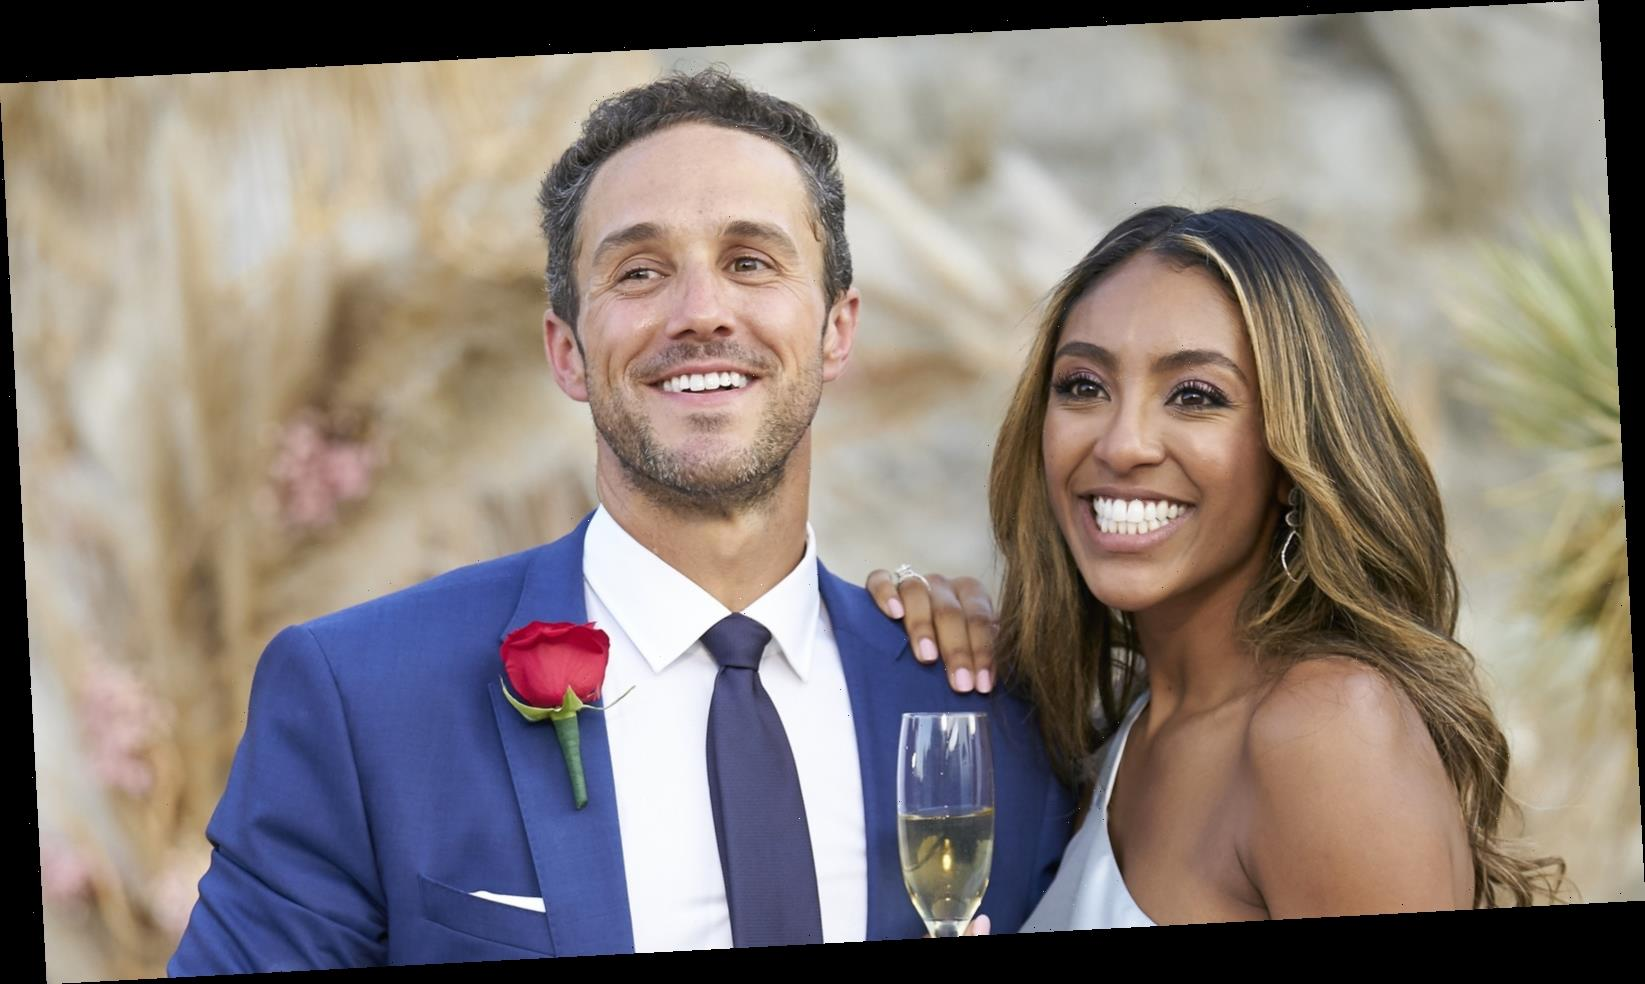 Bachelorette Engagements That Imploded With Lightning Speed